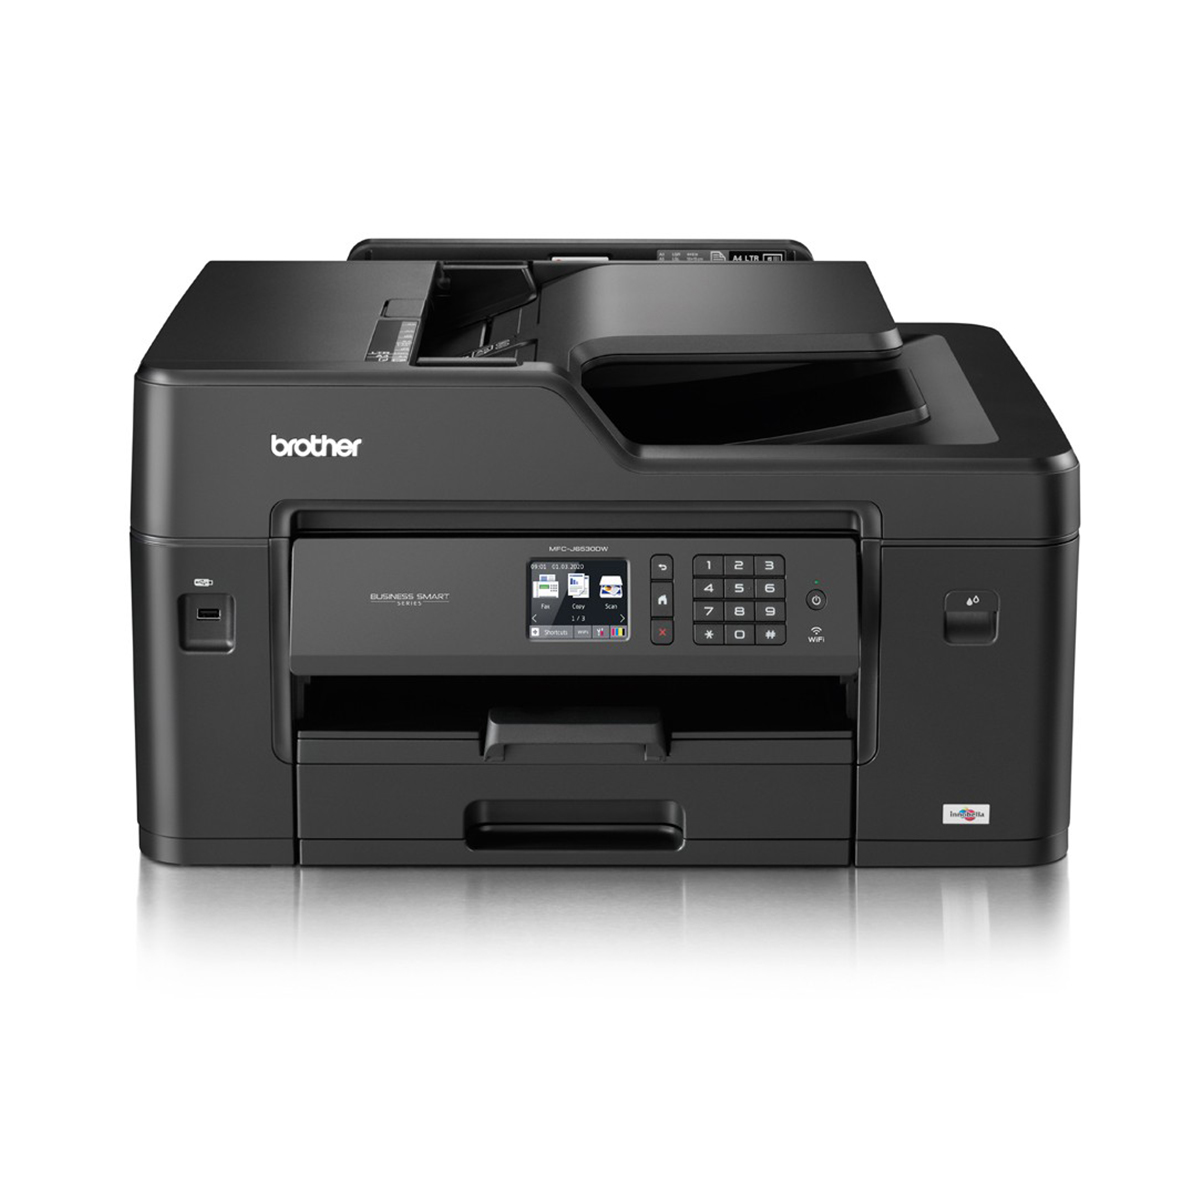 Brother MFC-J6530DW A Grade - Refurbished Machine